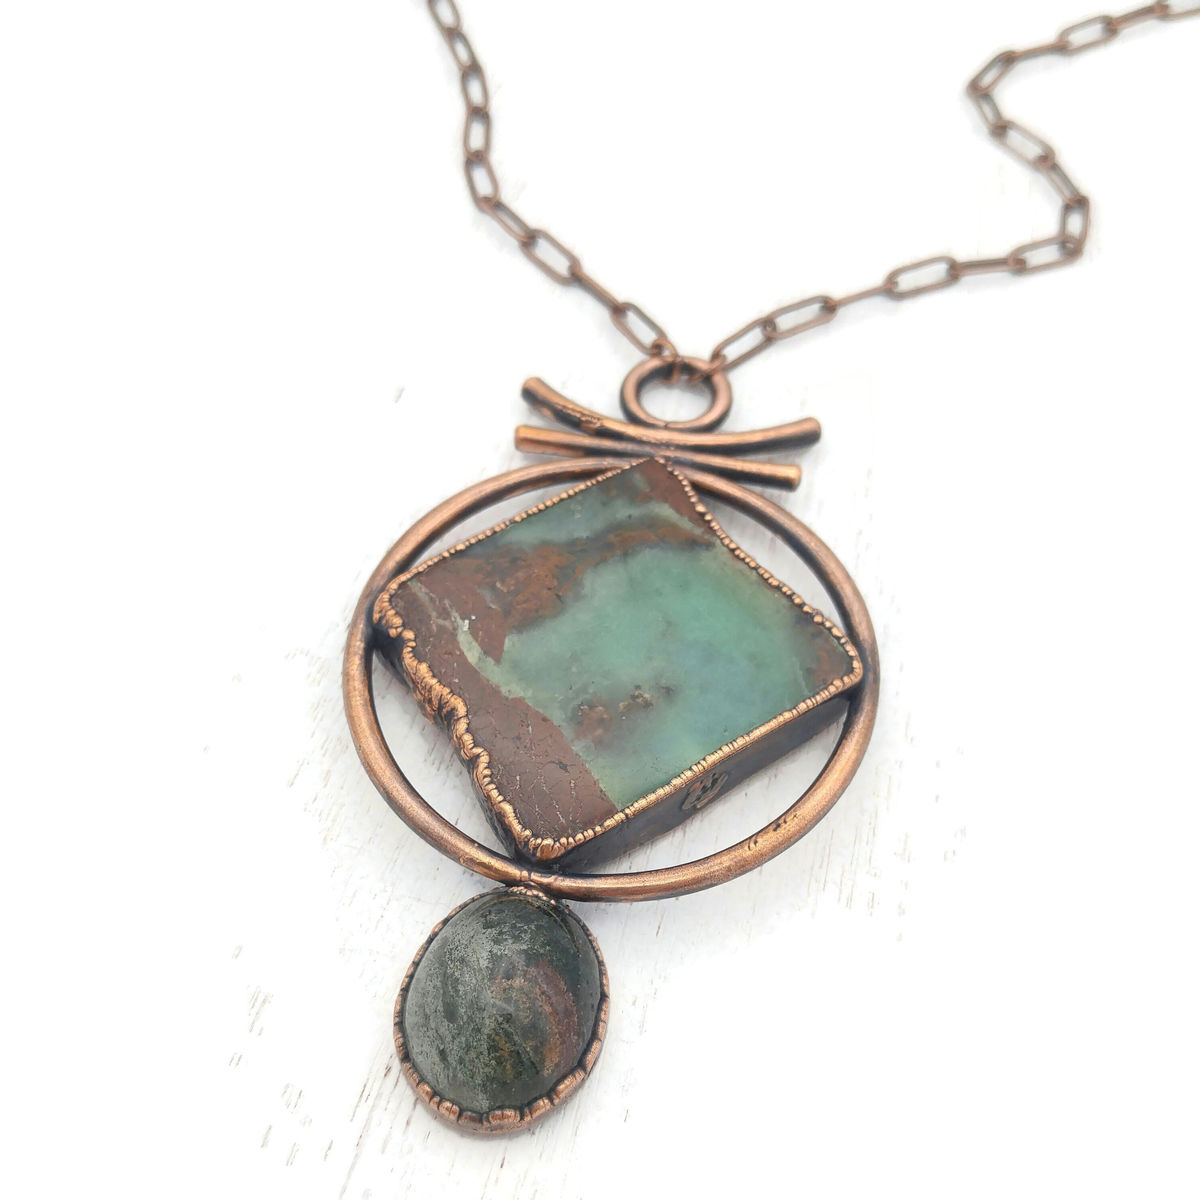 Chrysoprase Garden Necklace - product images  of